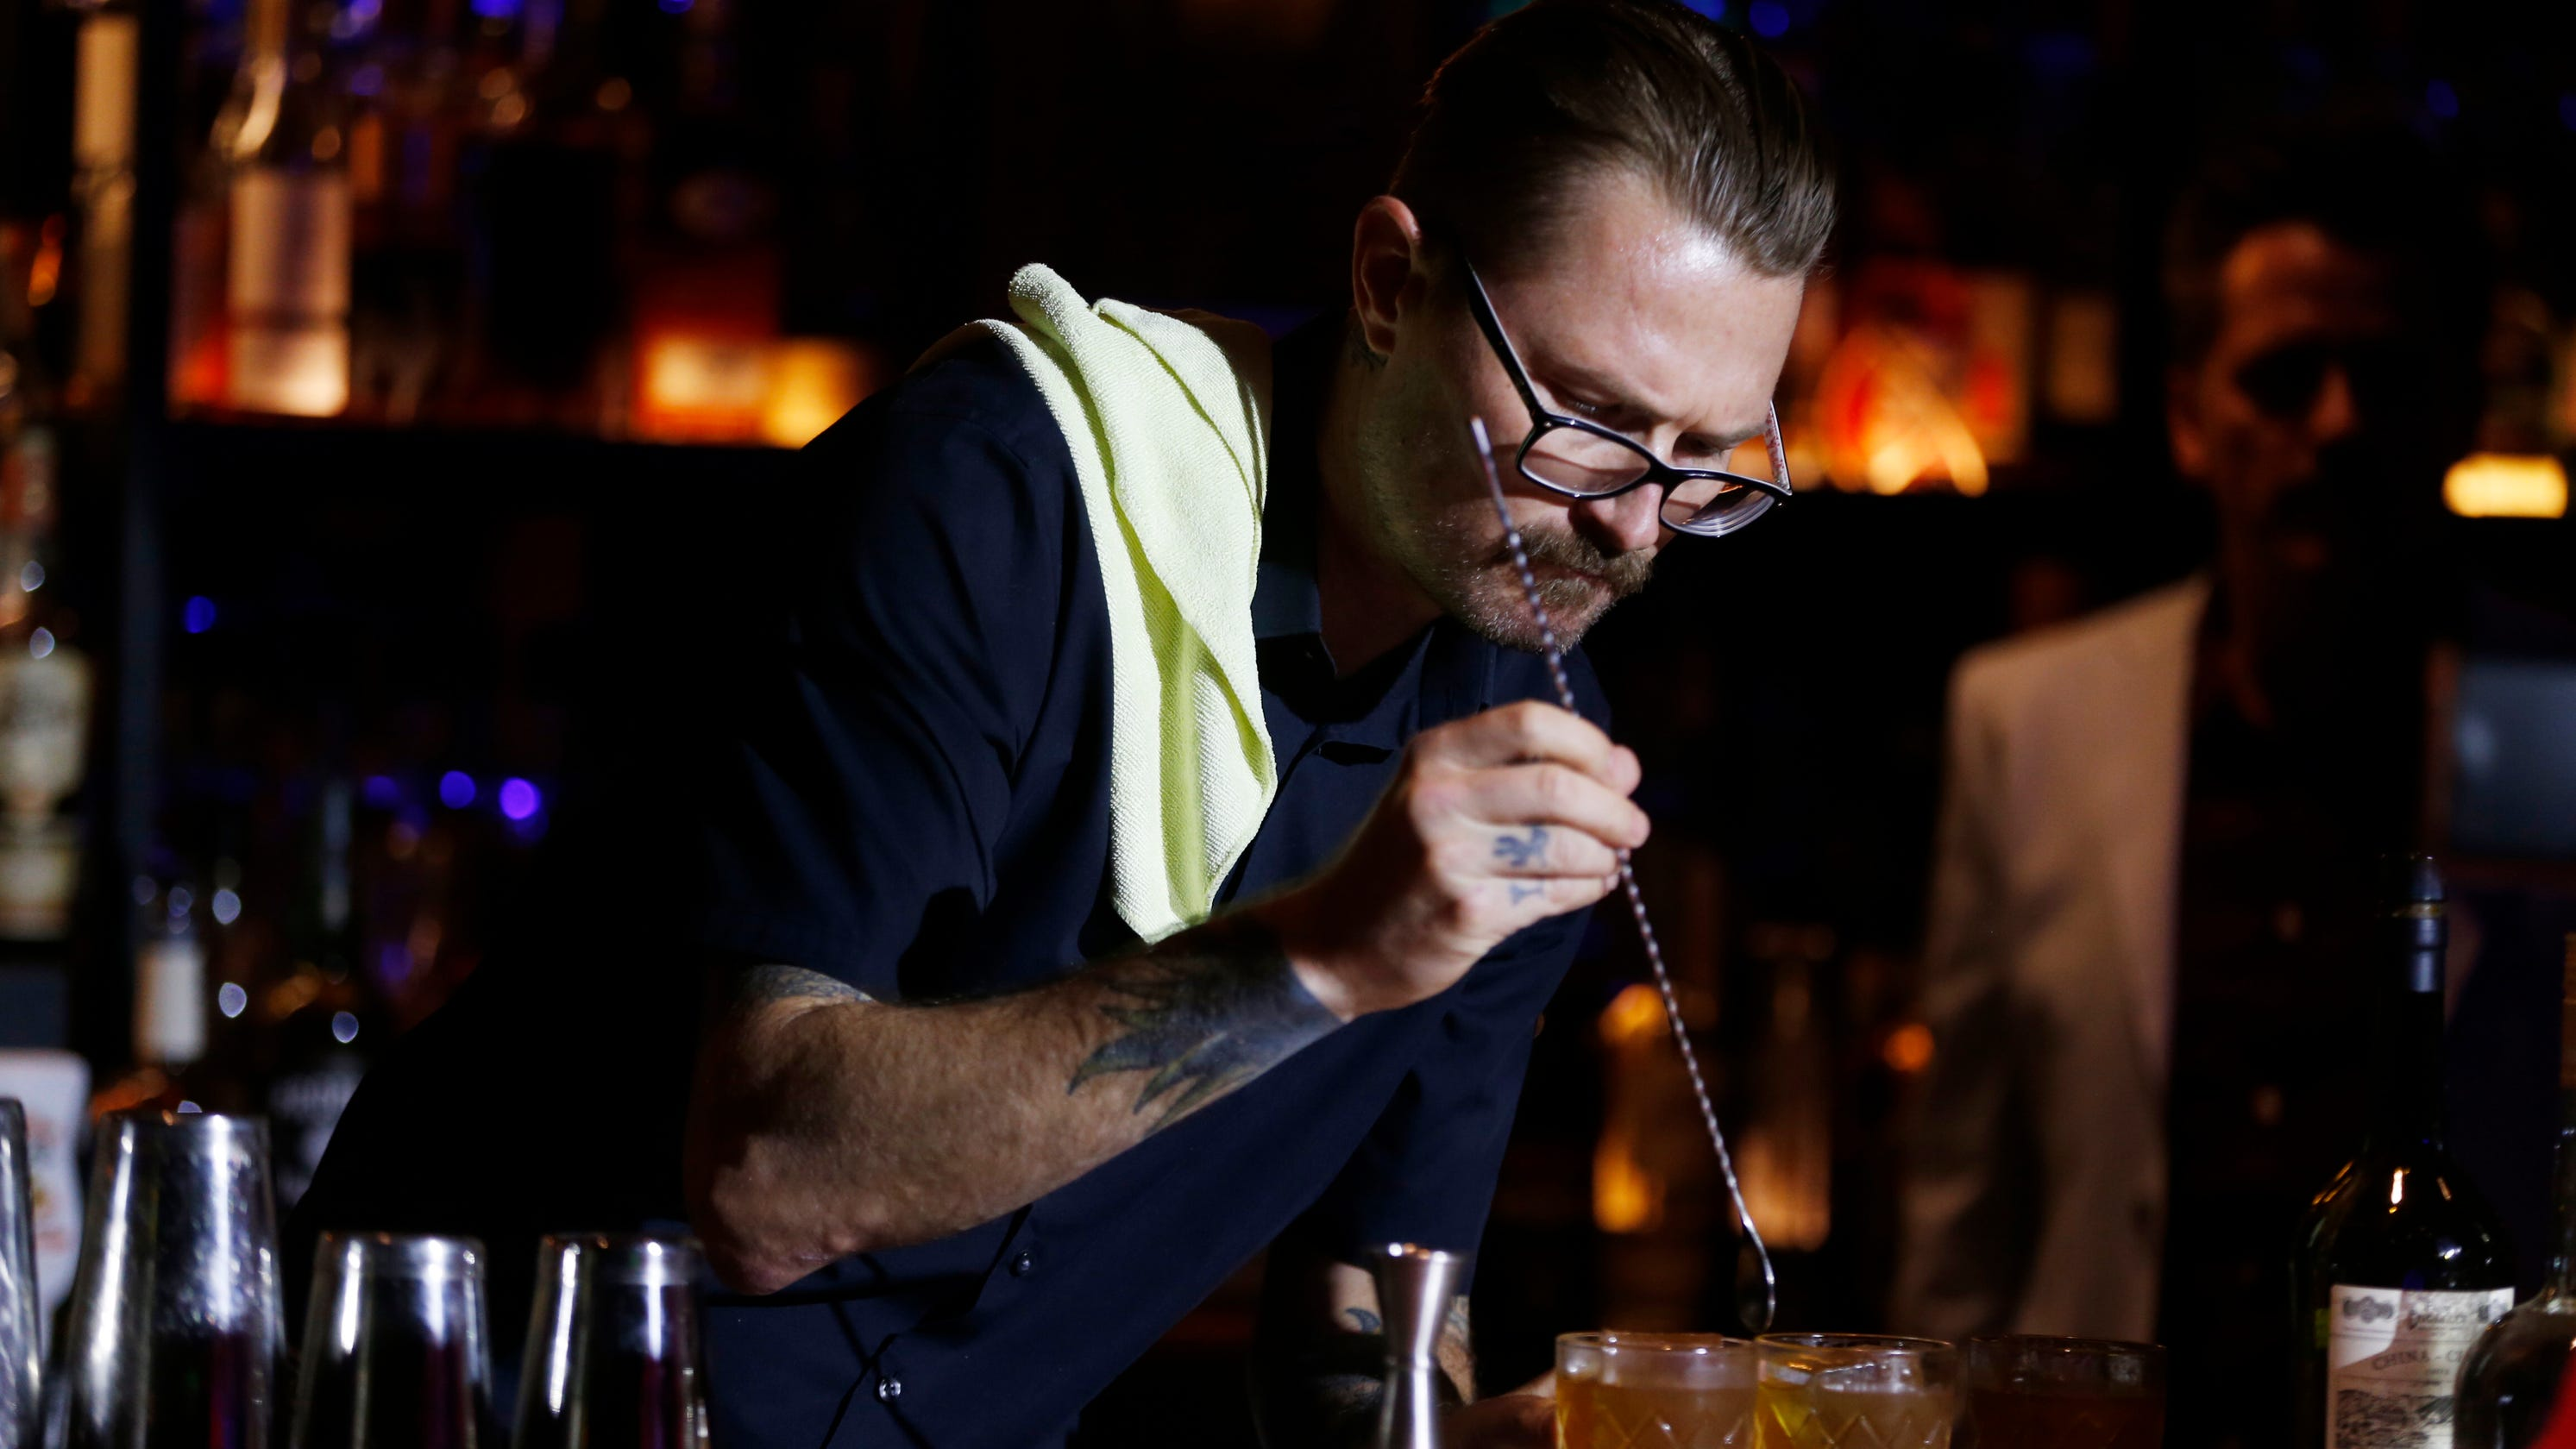 Top Arizona bartenders threw down to be crowned 'Last Slinger Standing.' Meet the champ